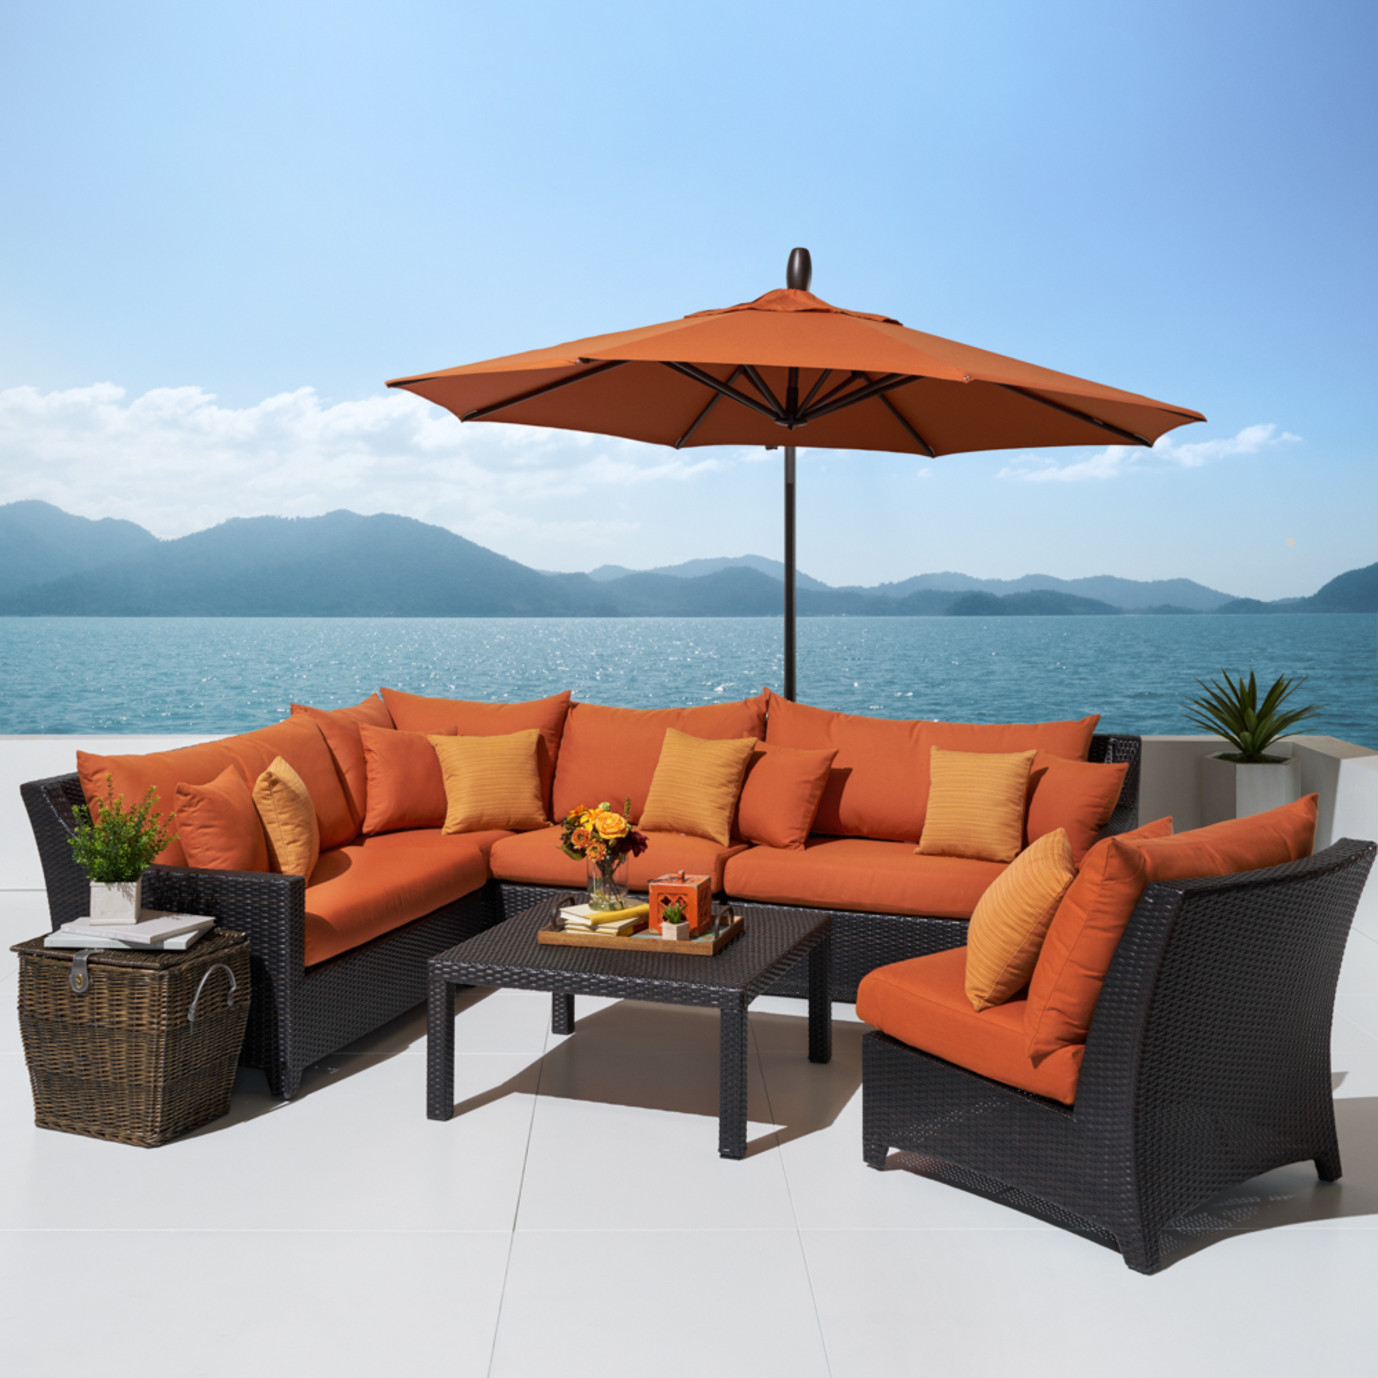 Deco™ 6pc Sectional and Table with Umbrella - Tikka Orange